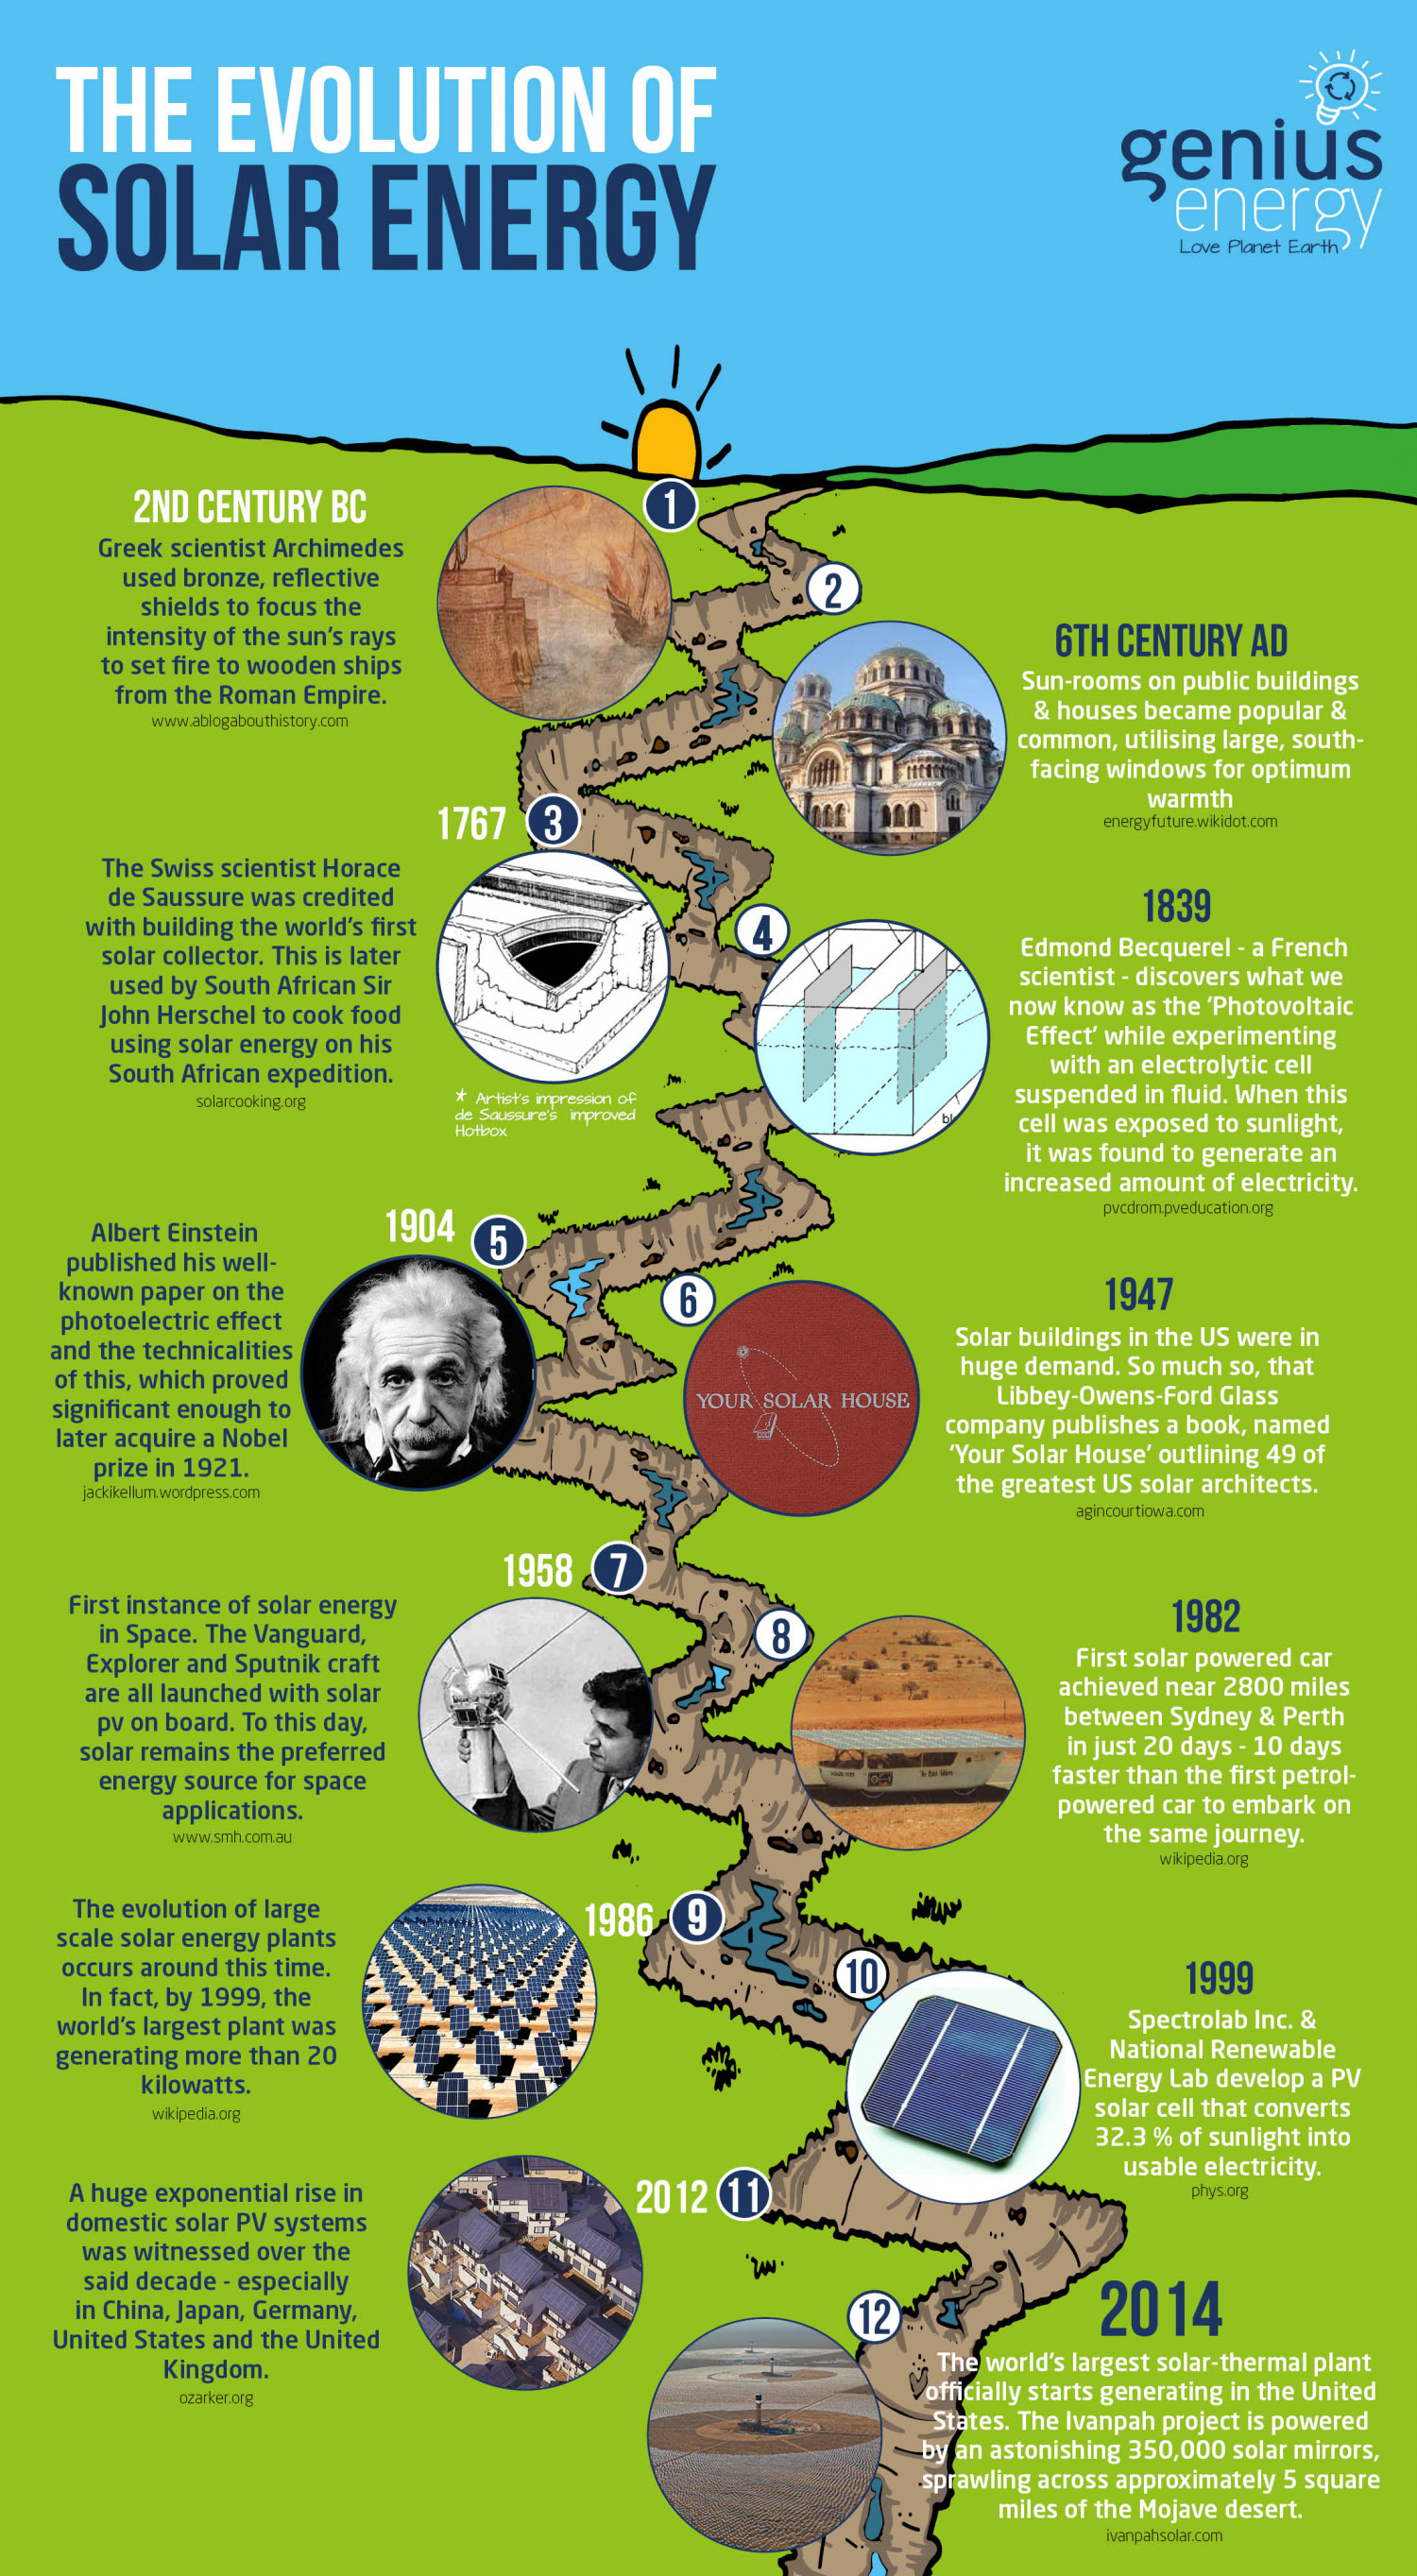 the history and application of solar energy The wind is a free, clean, and inexhaustible energy source it has served humankind well for many centuries by propelling ships and driving wind.